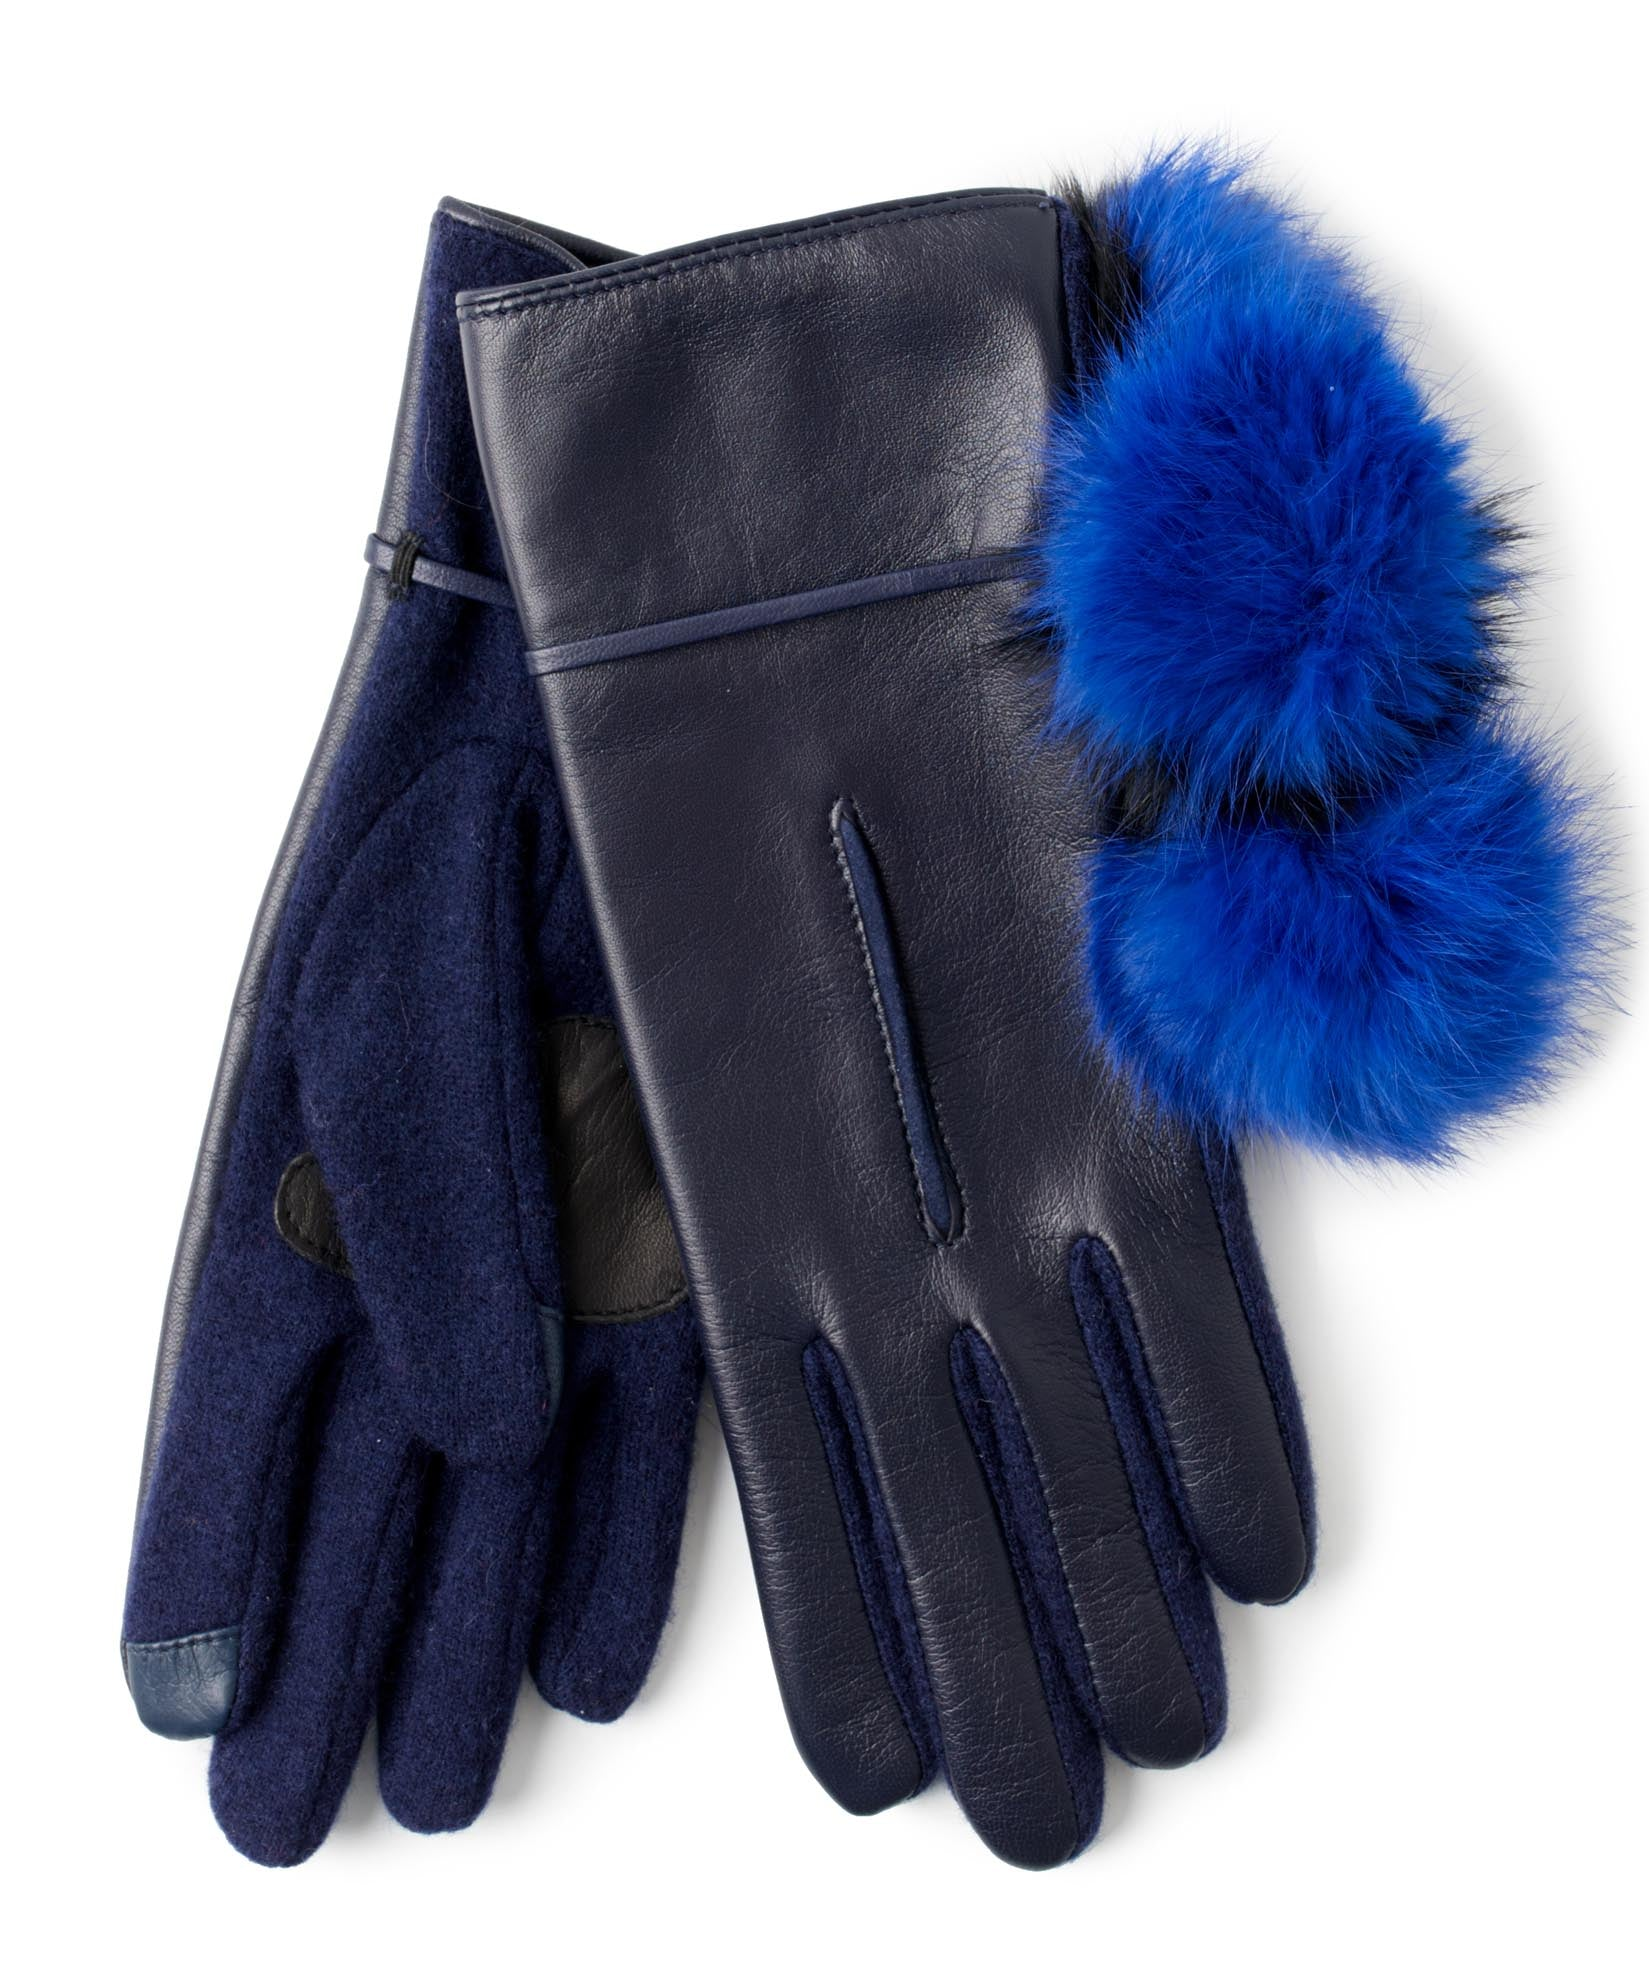 Maritime Navy - Colorblock Fur Pom Glove